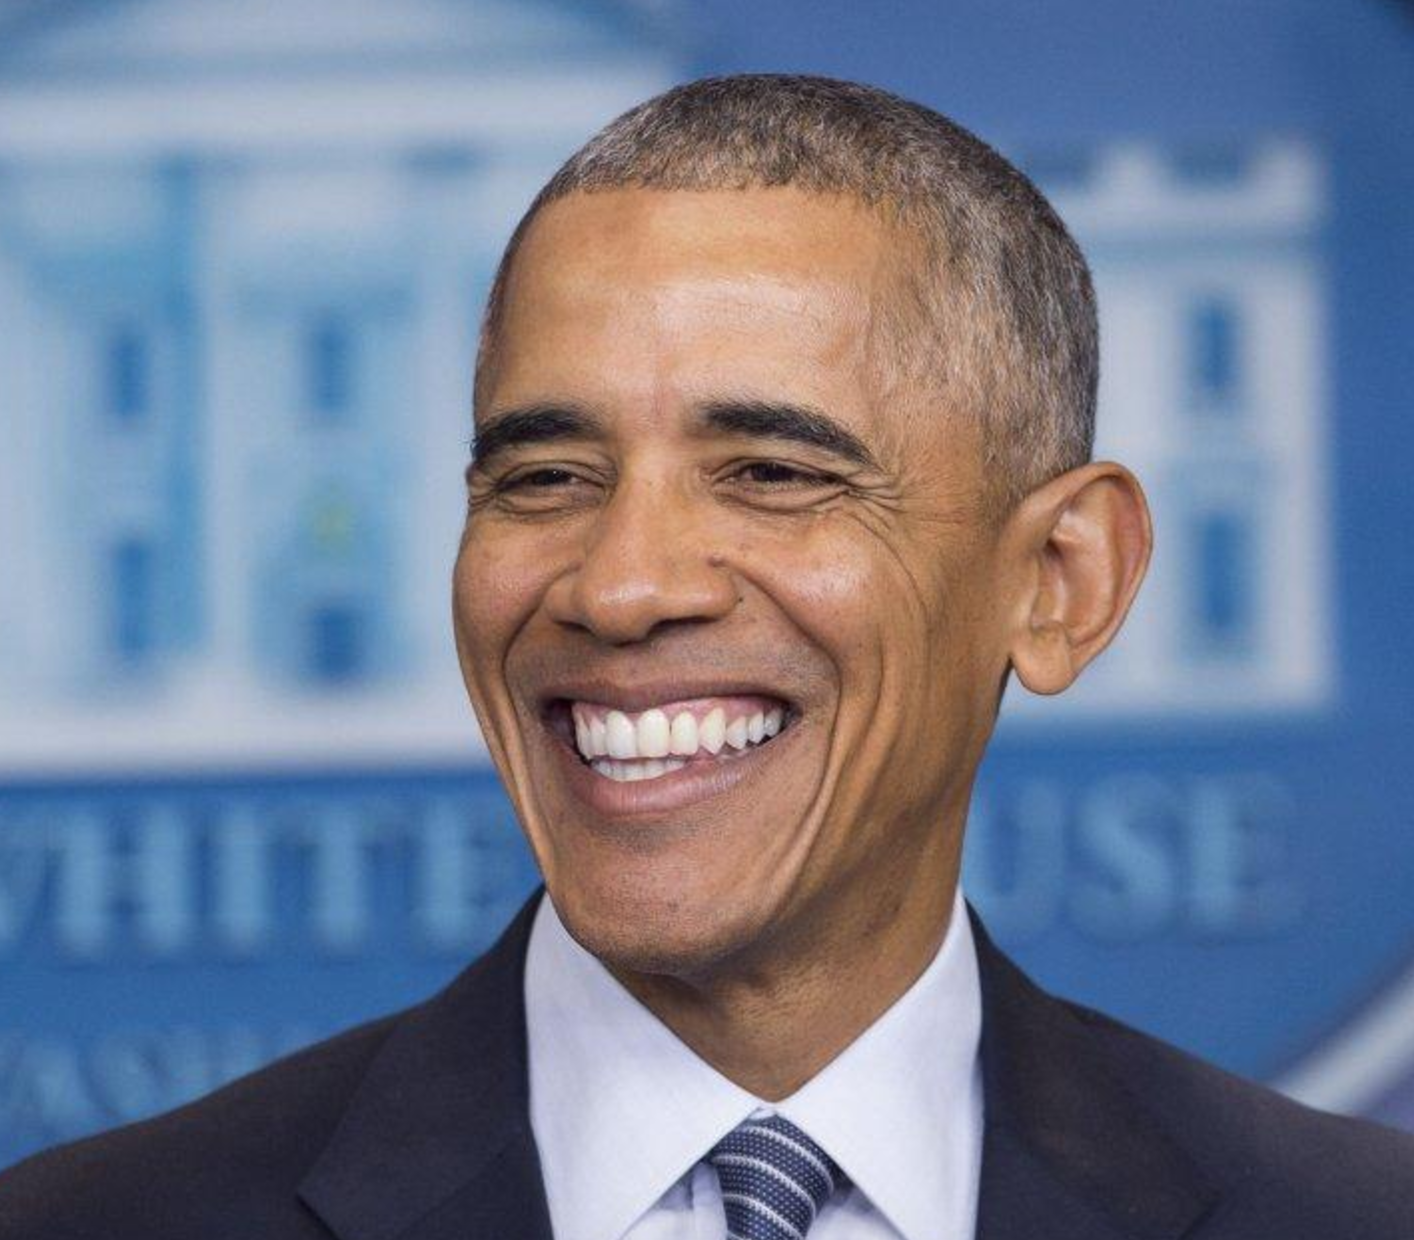 Barack Obama's Approval Rating Hits 60 Percent Just As He Leaves Office